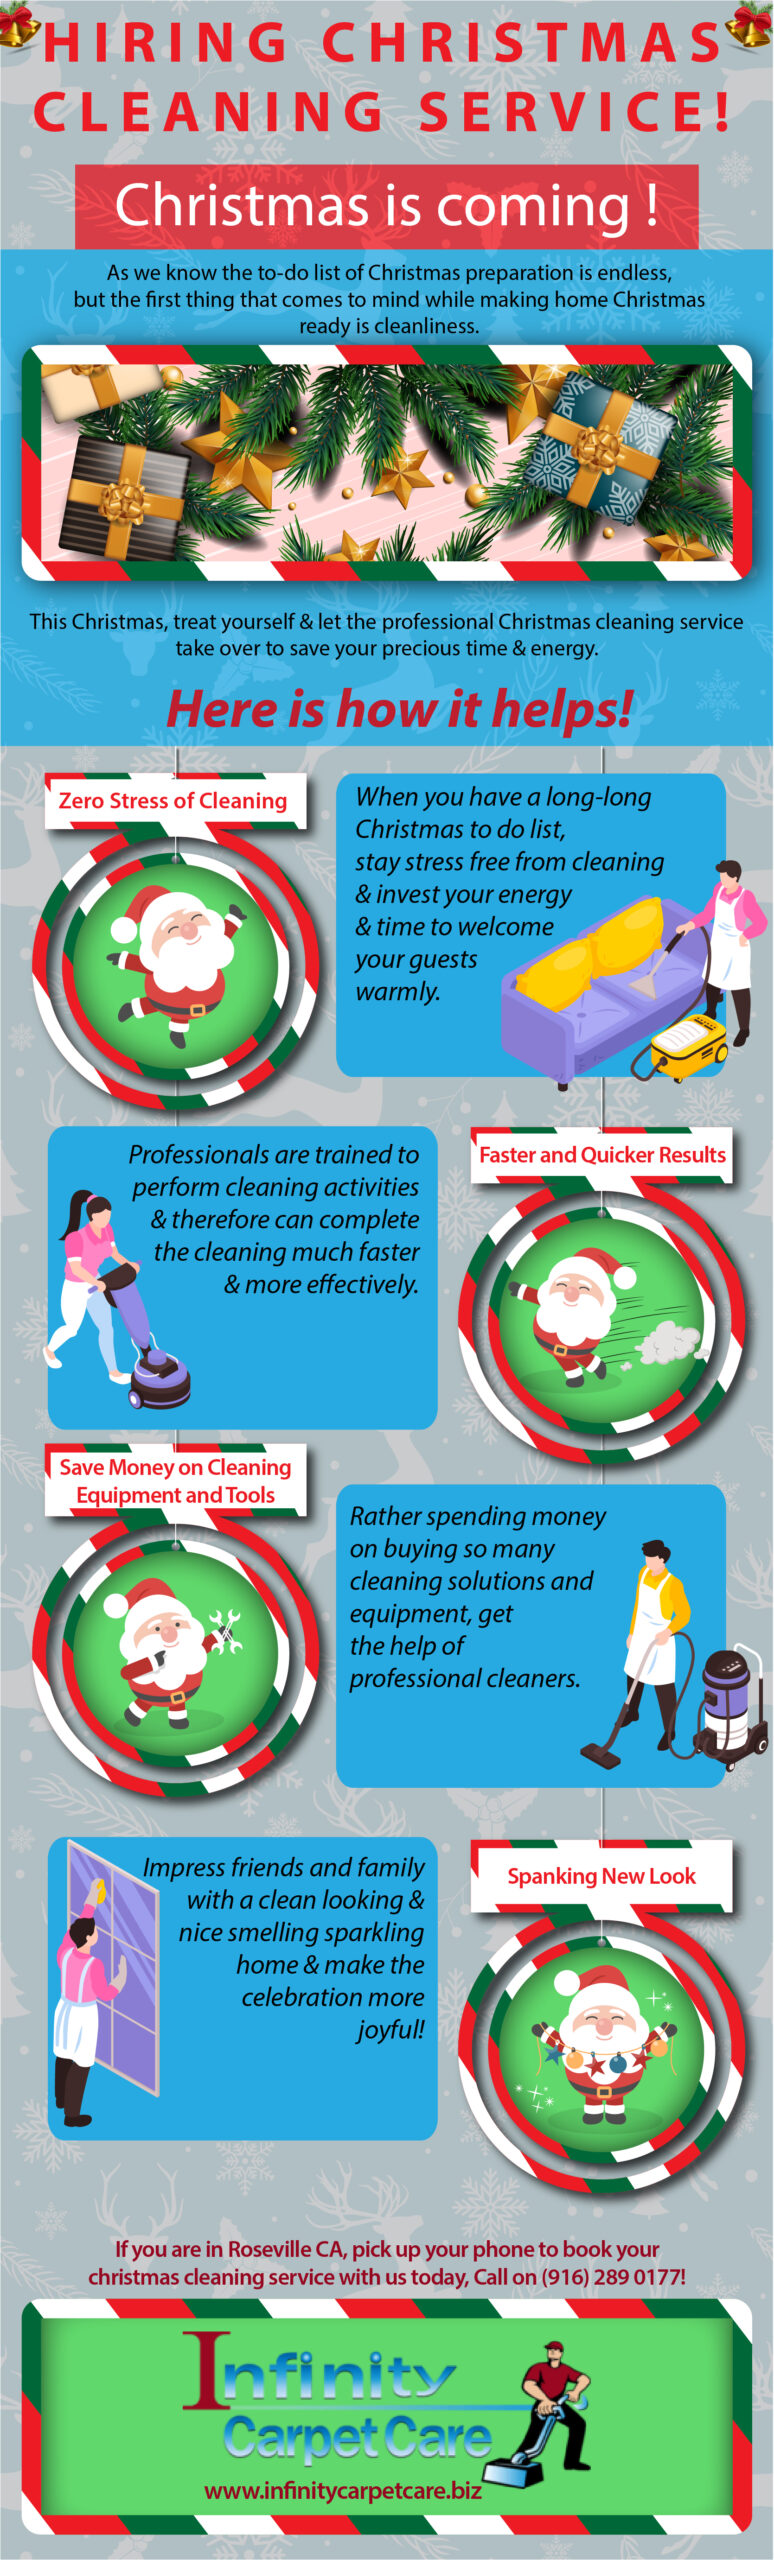 Christmas Cleaning Service Roseville CA